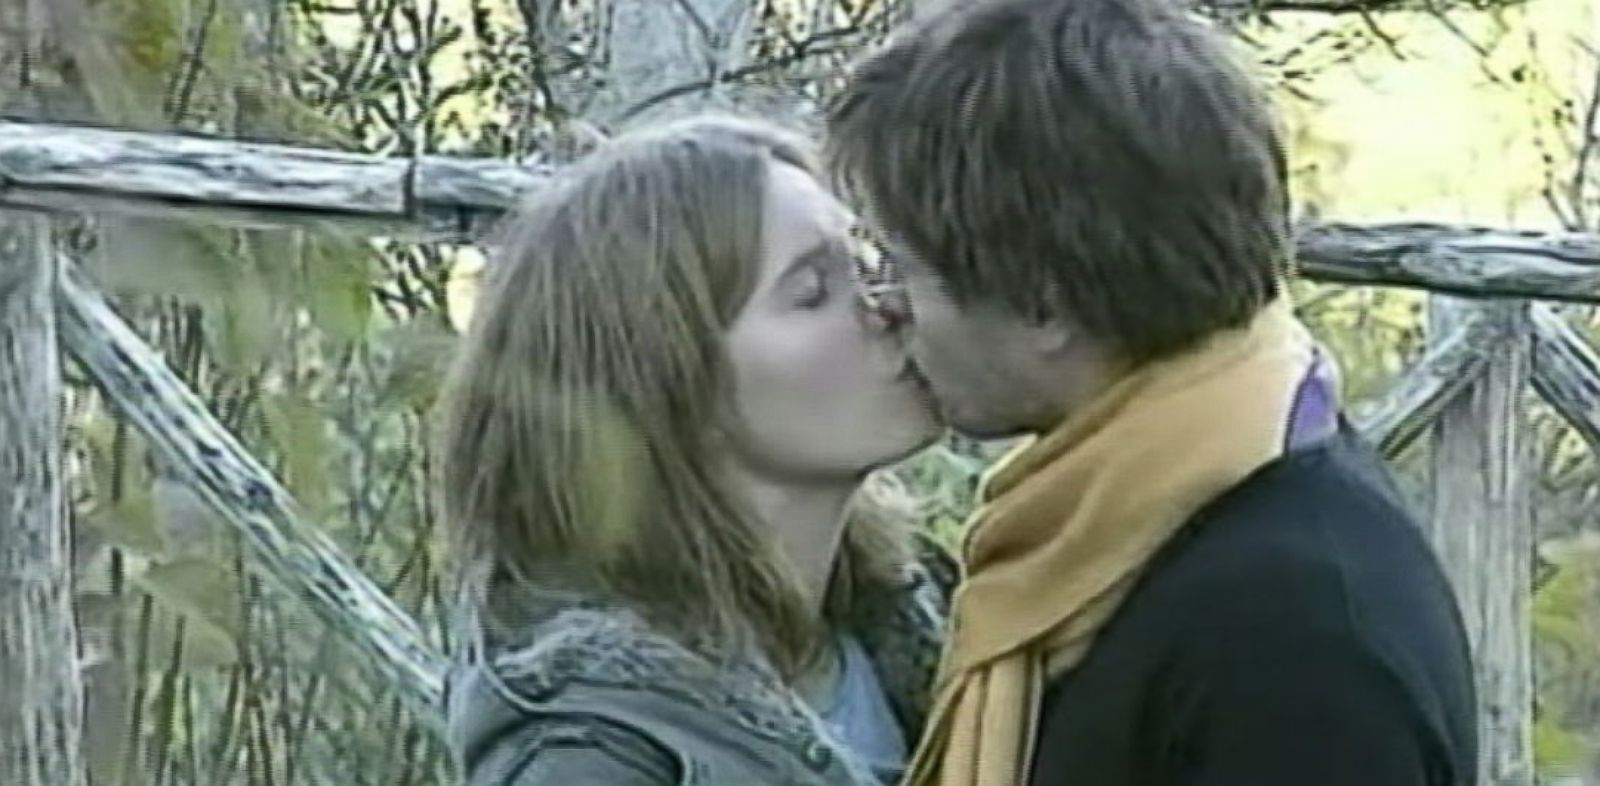 PHOTO: Amanda Knox and Raffaele Sollecito are seen embracing hours after Meredith Kerchers body was found in Italy in 2007.